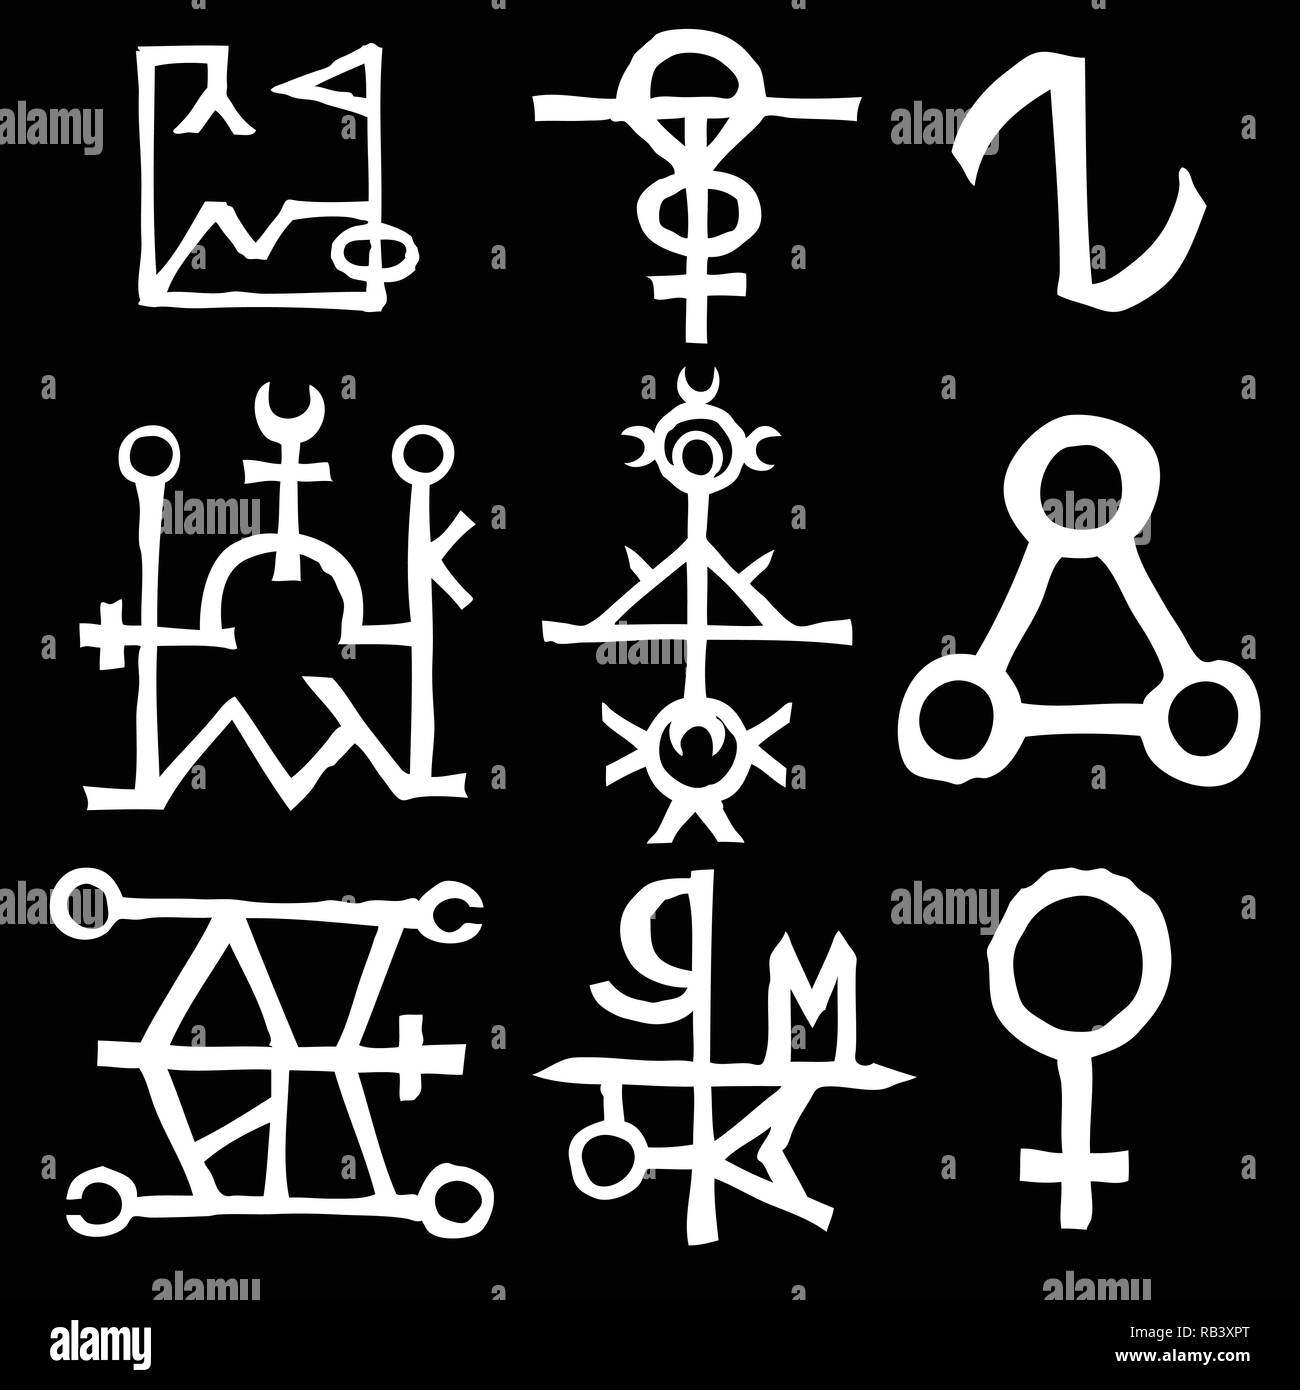 Wiccan symbols imaginary cross symbols, inspired by antichrist pentagram and witchcraft. Vector. - Stock Image